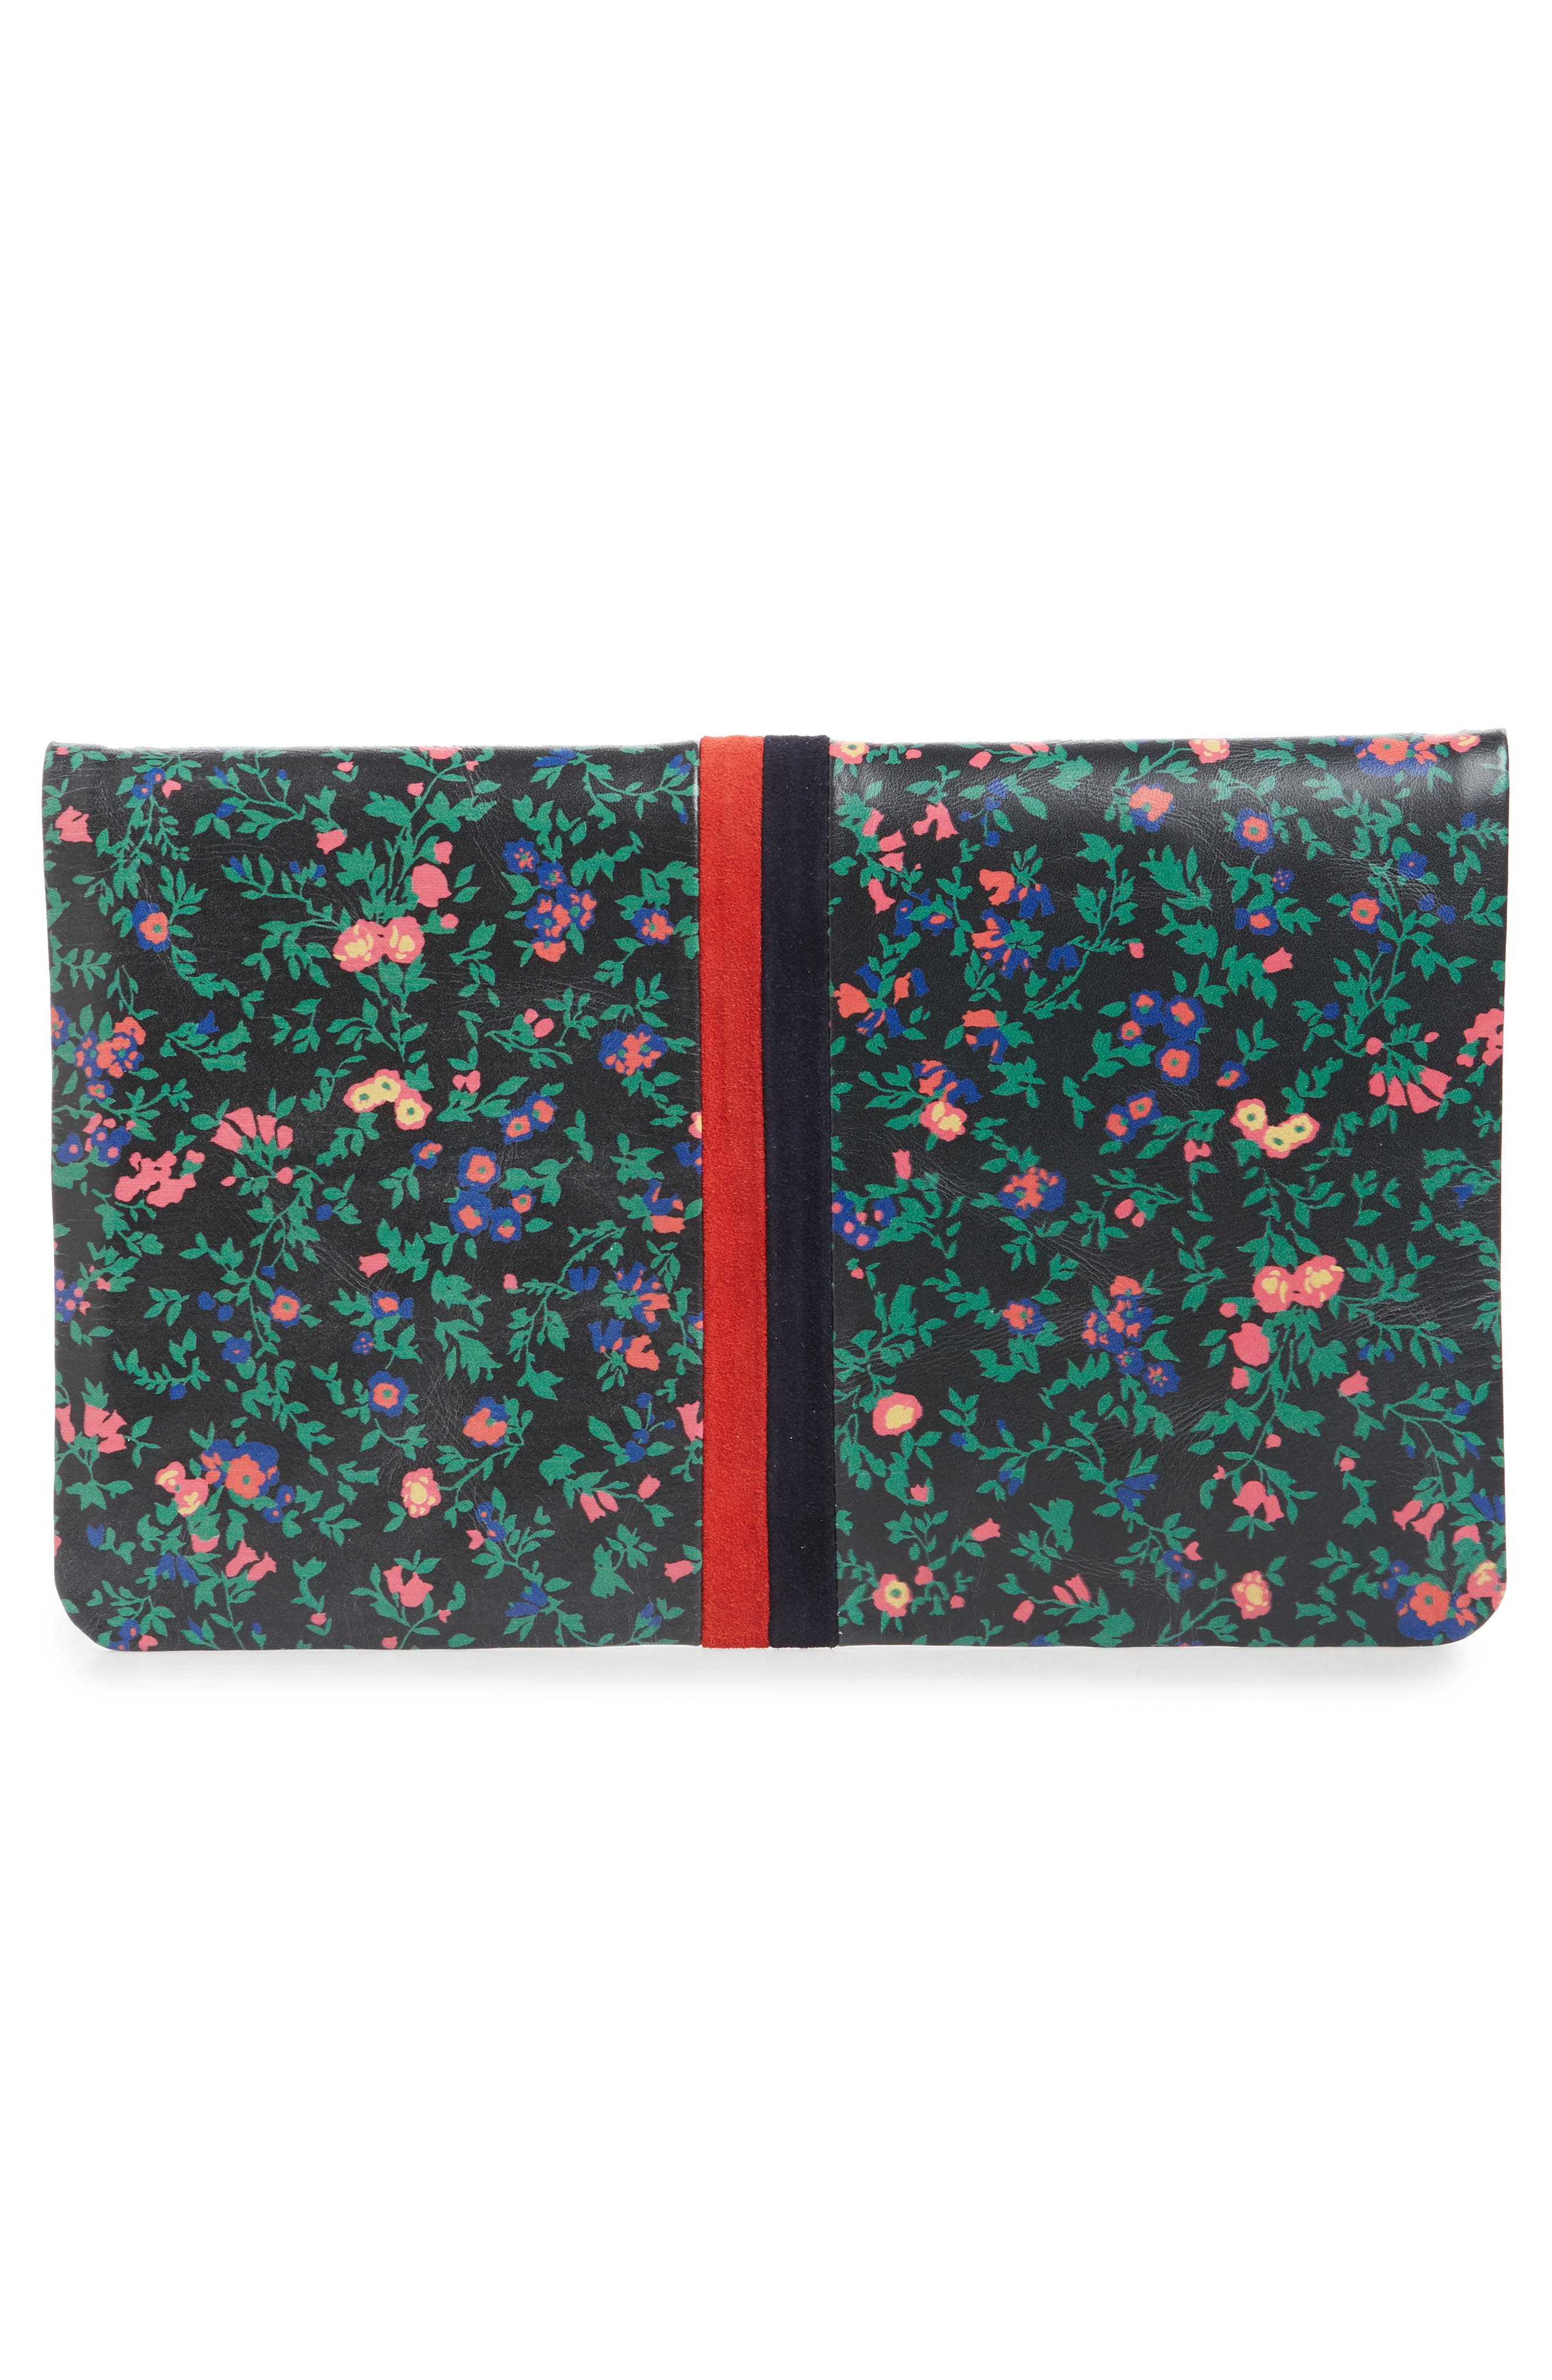 Foldover Ditzy Floral Leather Clutch,                             Alternate thumbnail 3, color,                             BLACK